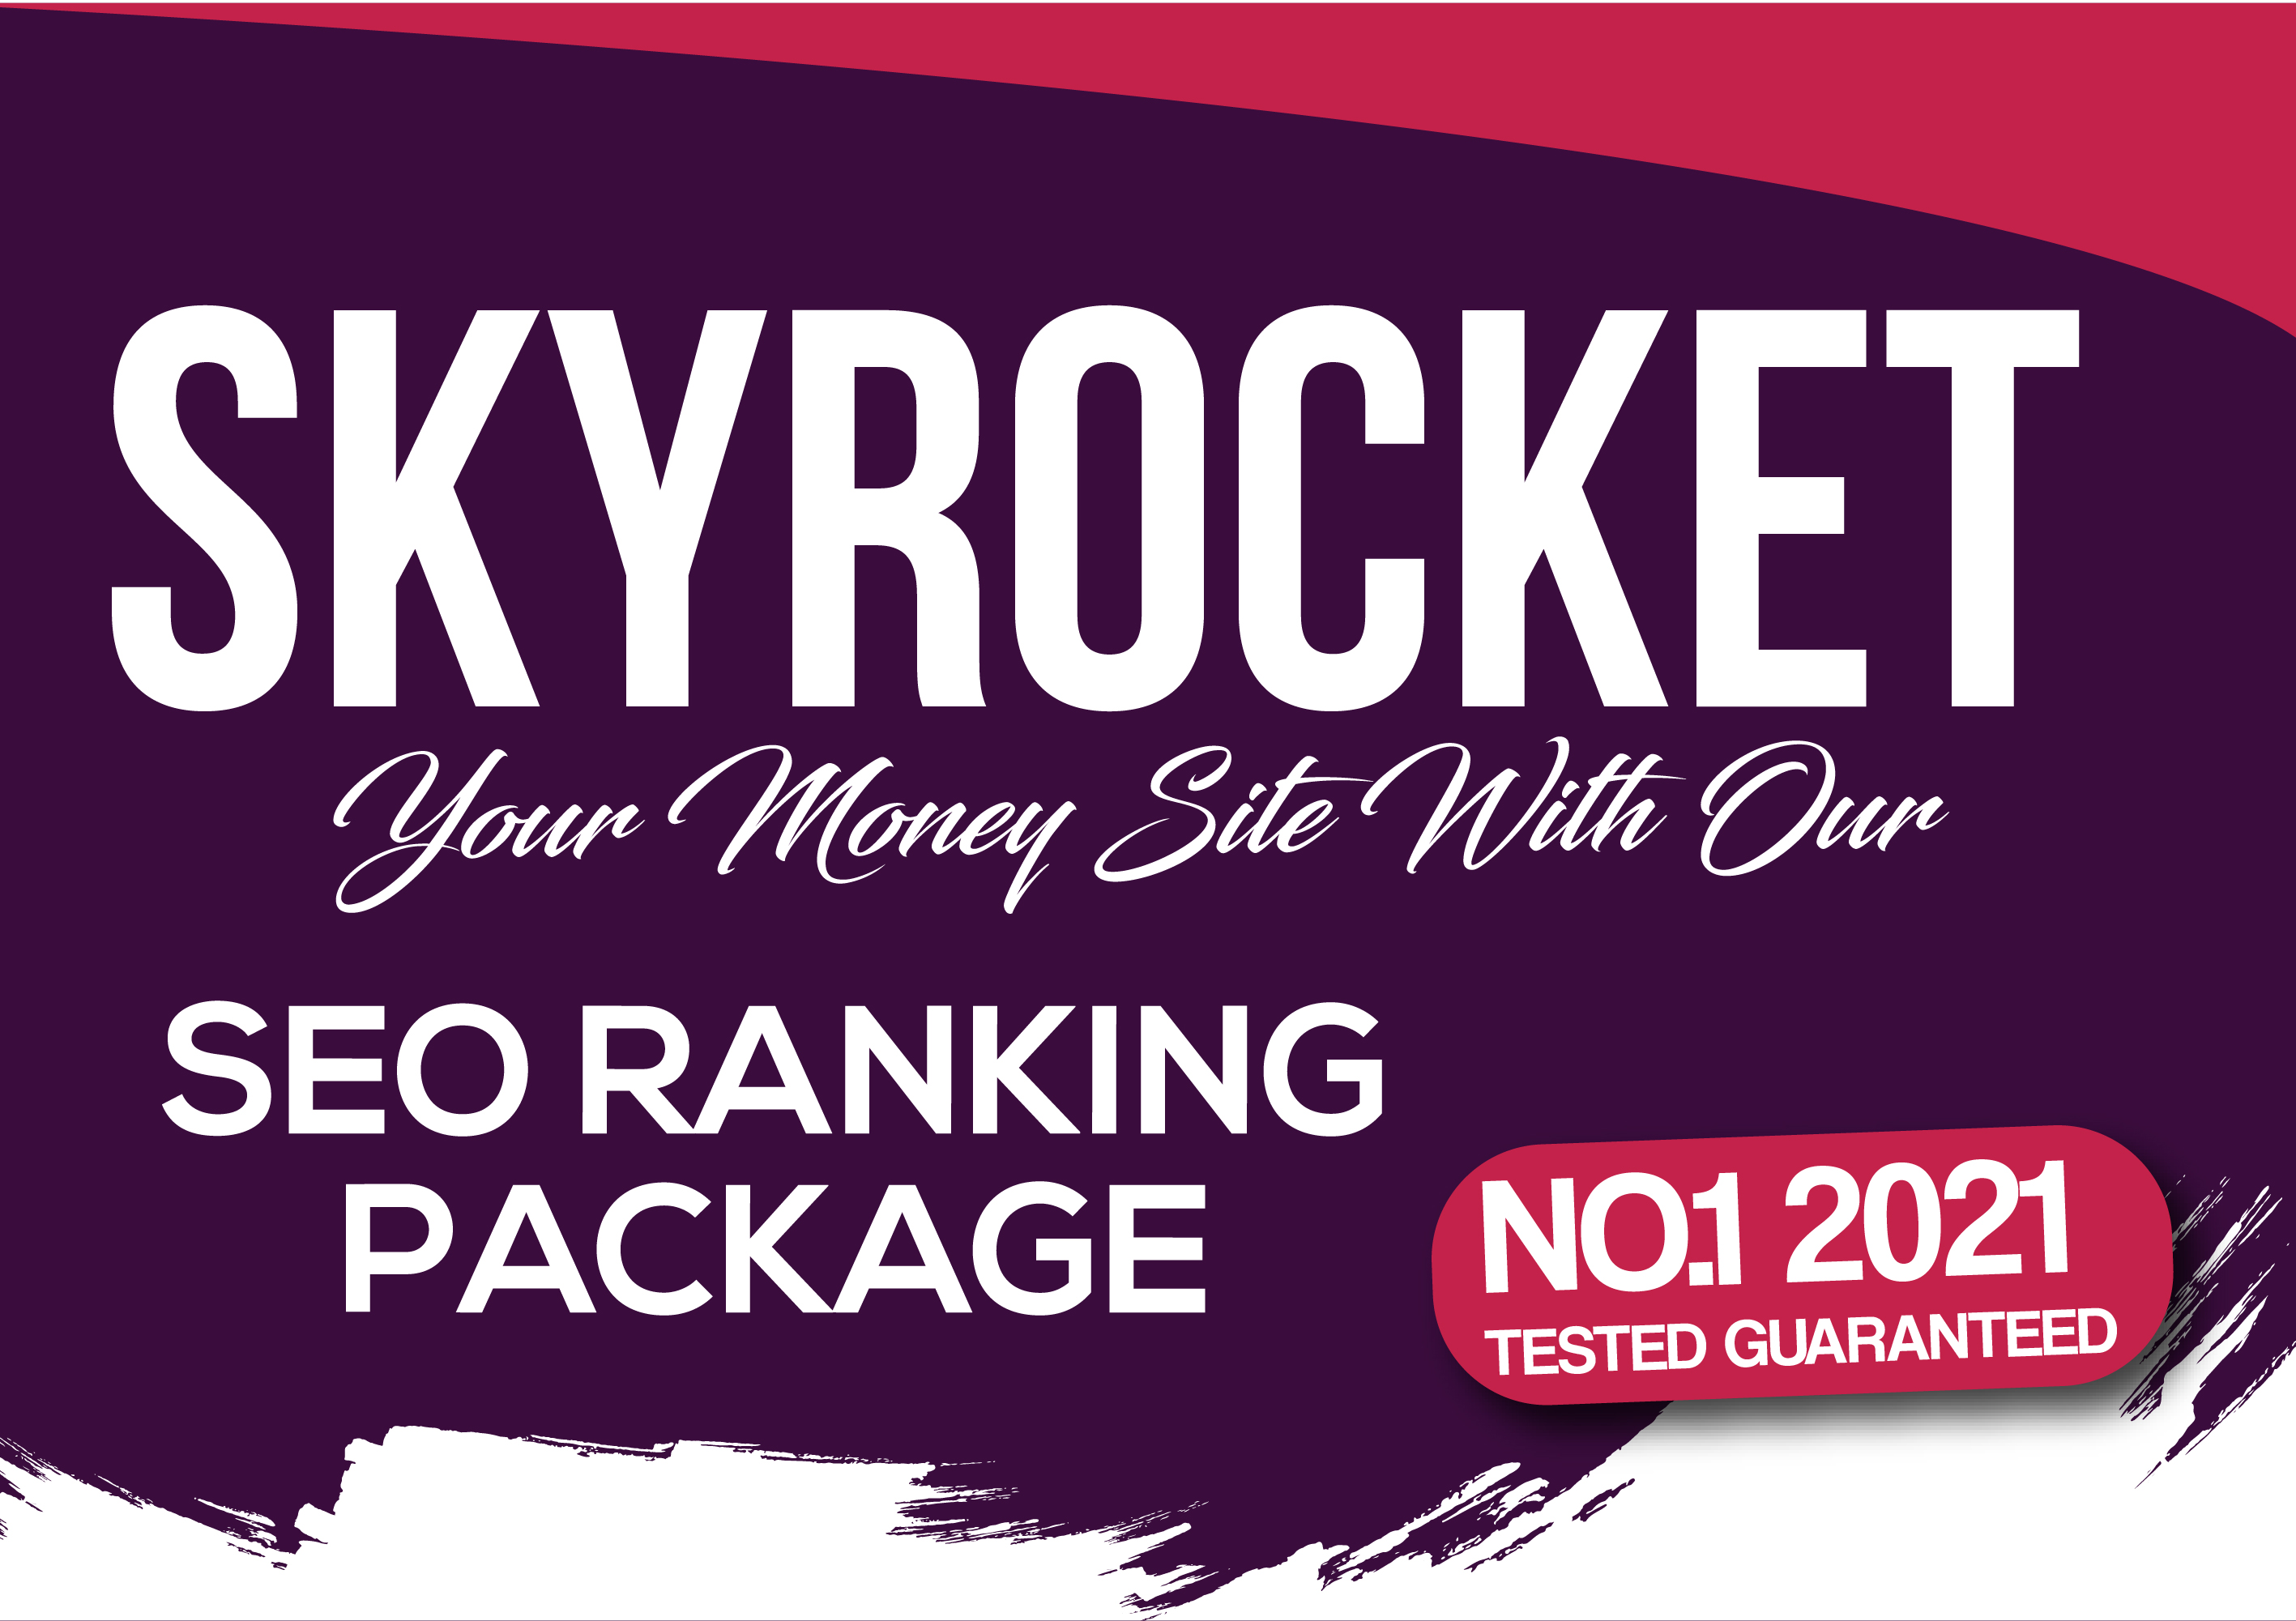 No.1 Guaranteed SEO Ranking Package That Will Skyrocket Your Money Site